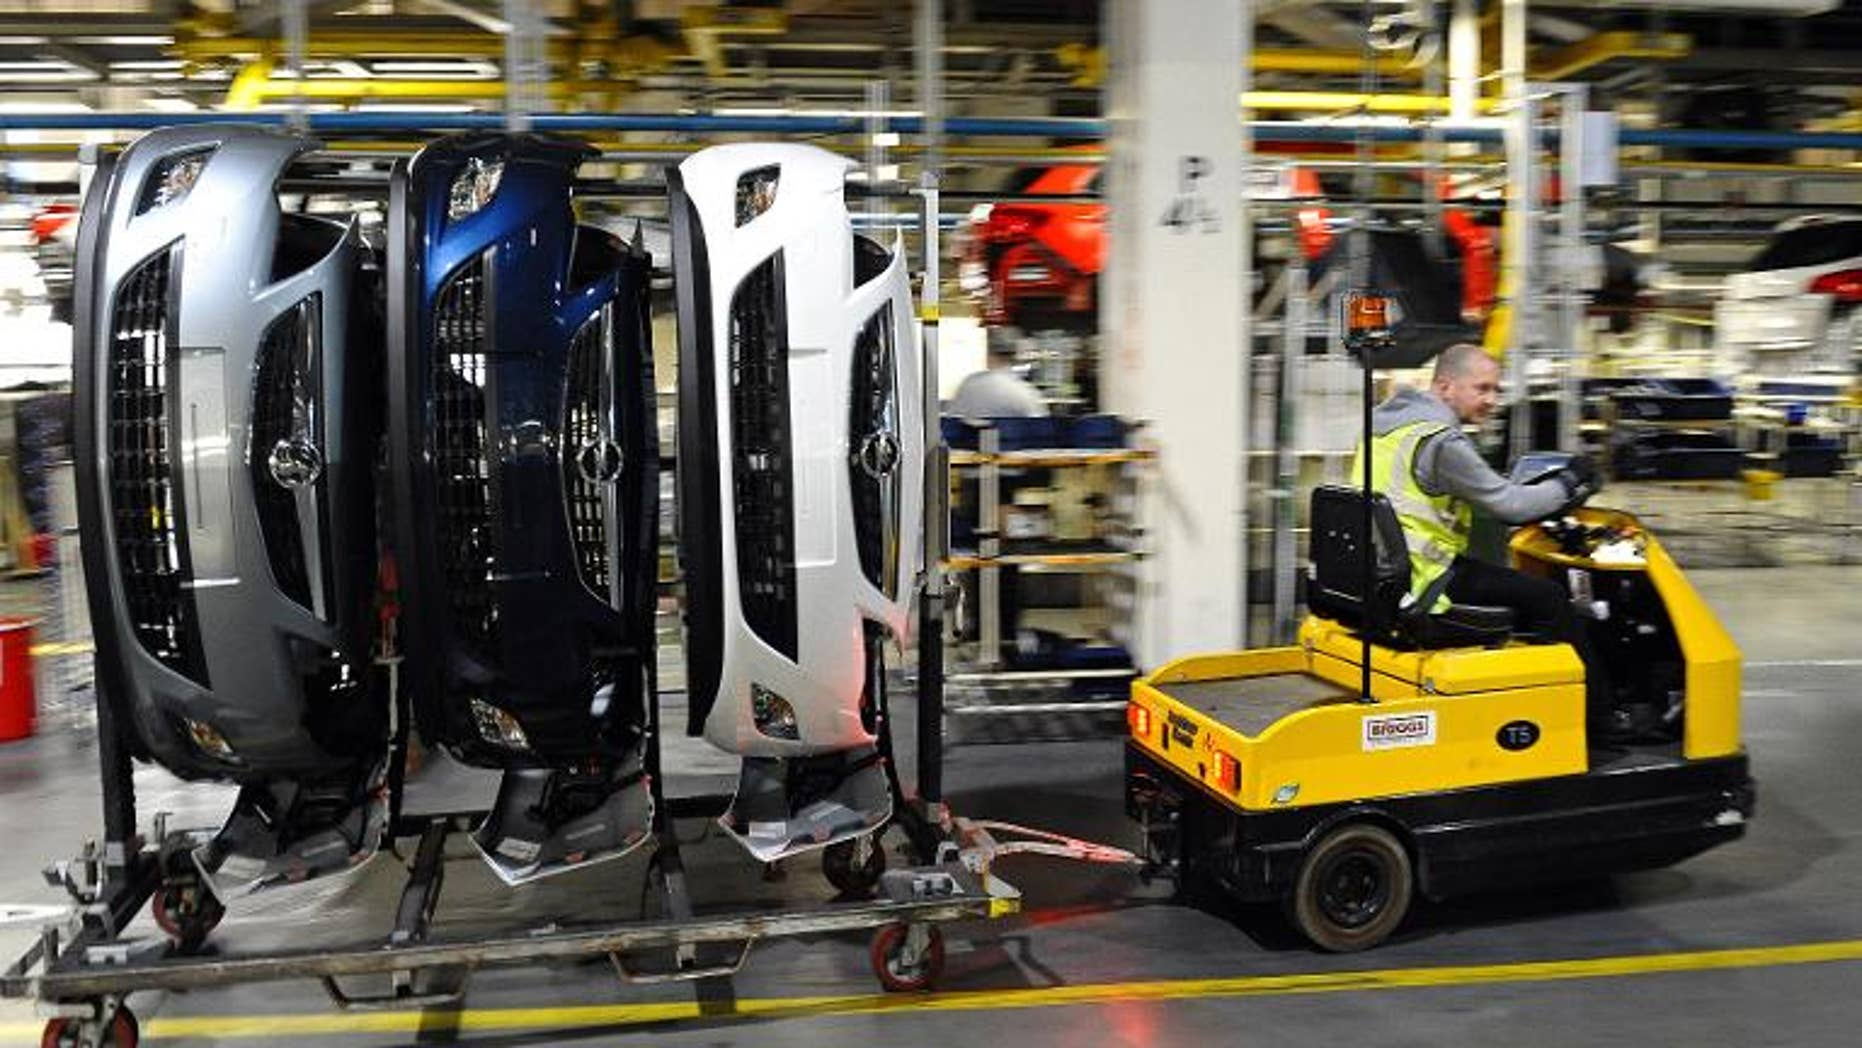 Vehicle parts for Vauxhall and Opel Astra cars are transported on the production line at the Vauxhall car factory in Ellesmere Port, northwest England, on May 17, 2012.